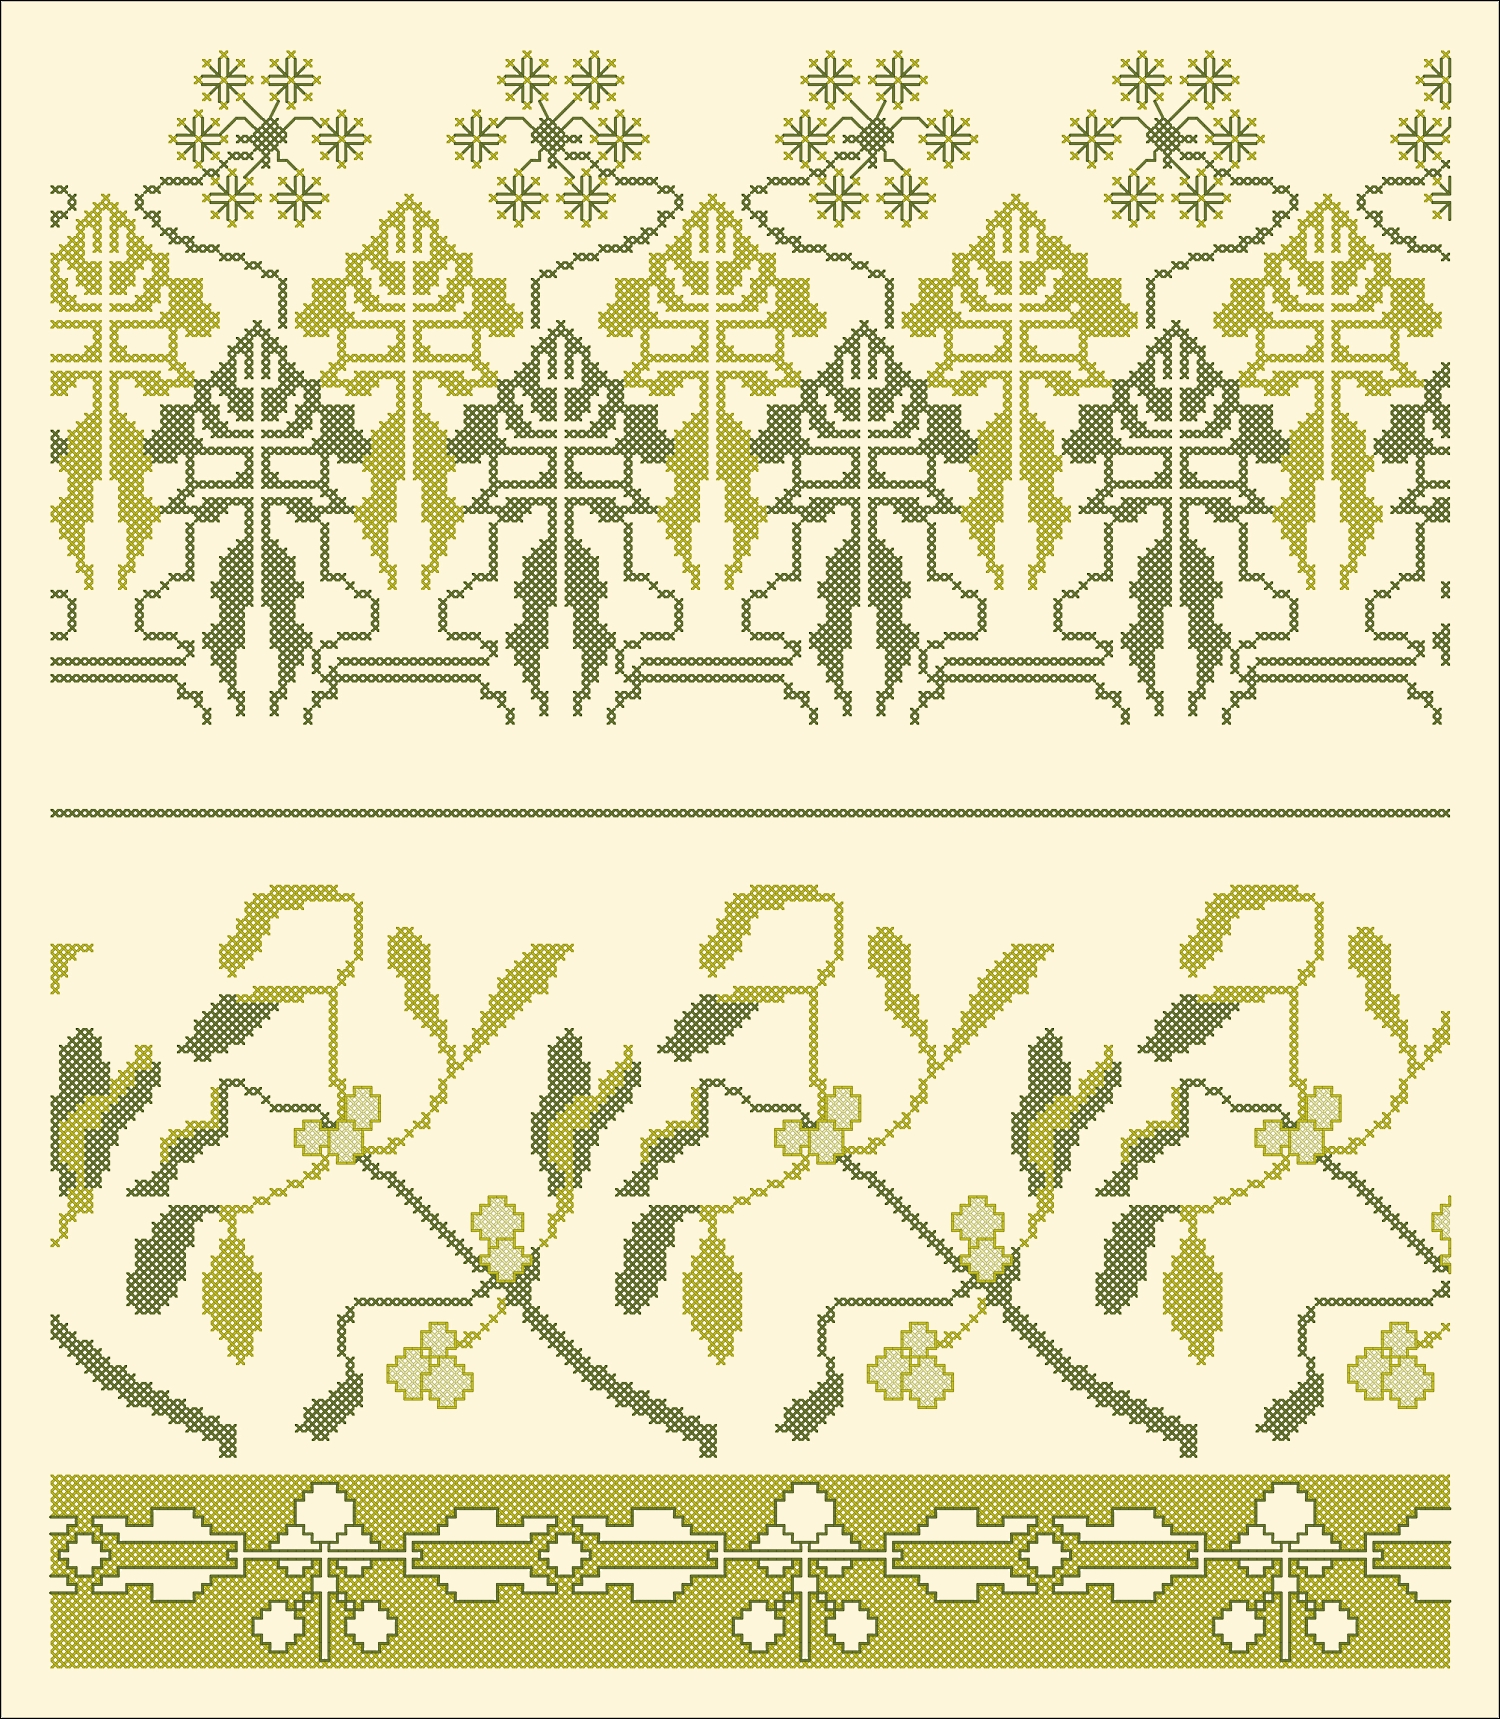 Angelica-and-mistletoe-Charts-for-cross-stitch-borders-wallpaper-wp5204060